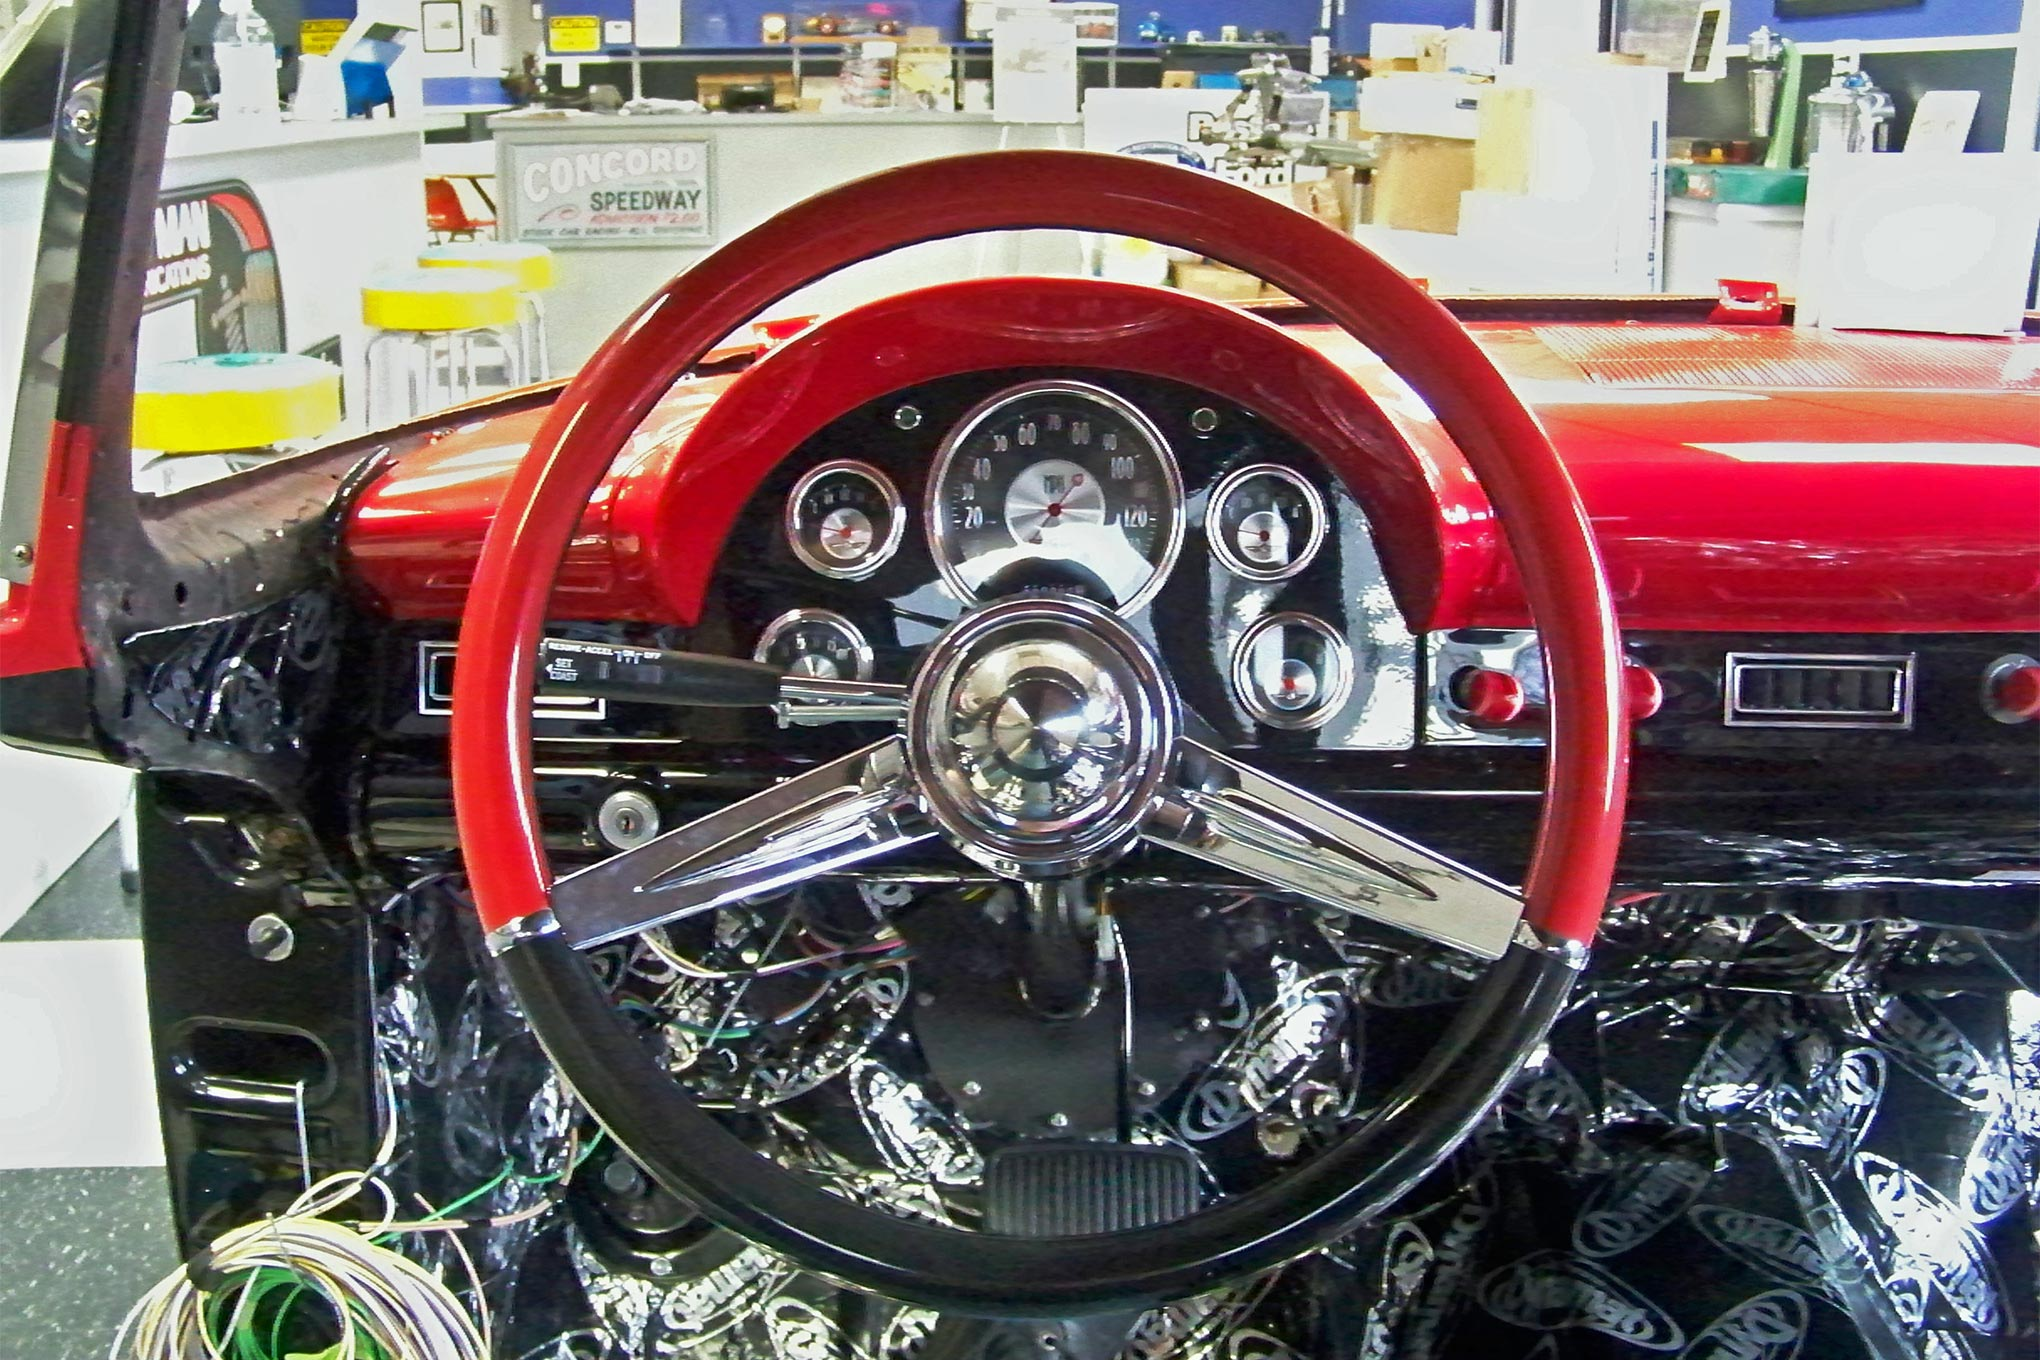 The dropped-spoke design of the CON2R steering wheel provides a clear view of the Classic Instruments. Thinking of details like this during the build makes driving the car a real pleasure.